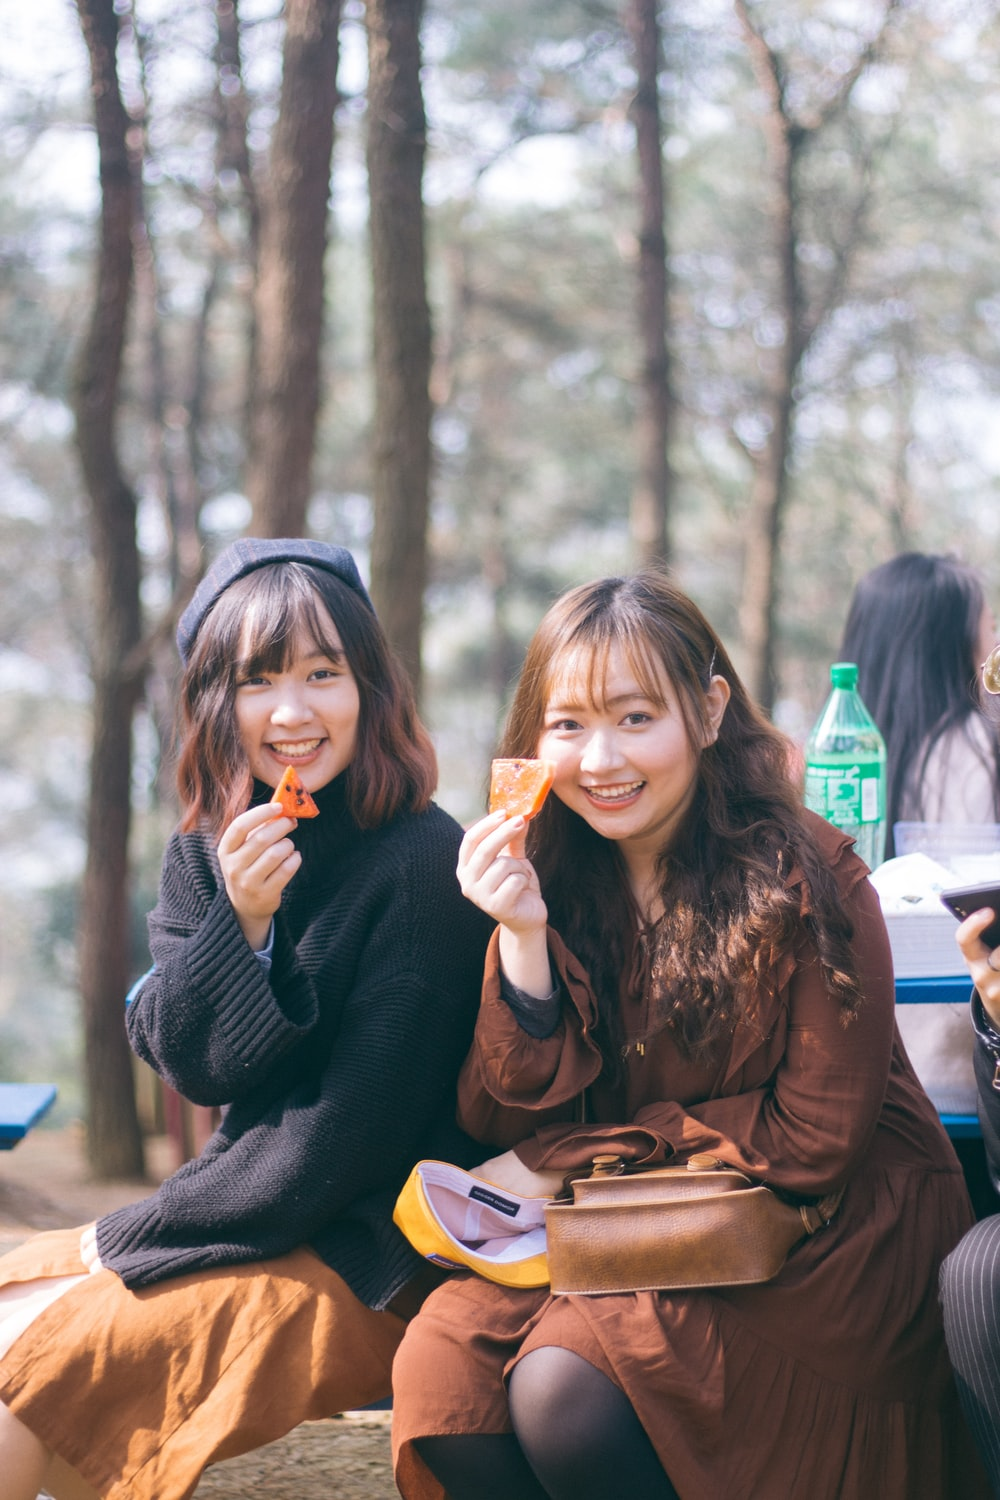 two women holding potato chips while sitting and smiling